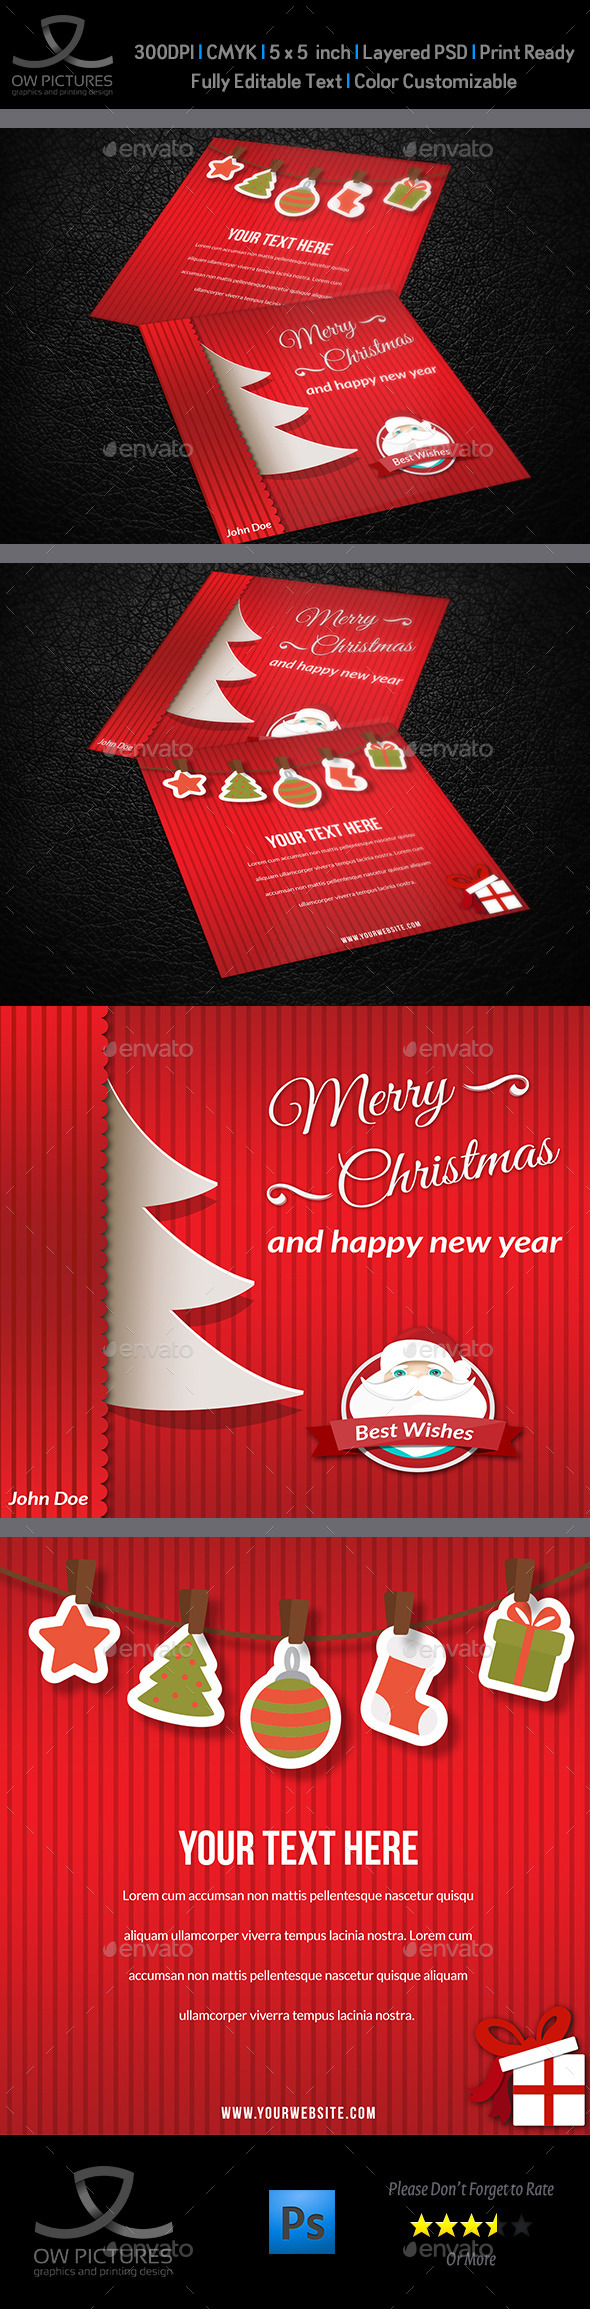 GraphicRiver Christmas and New Year Greeting Card Vol.3 9434285